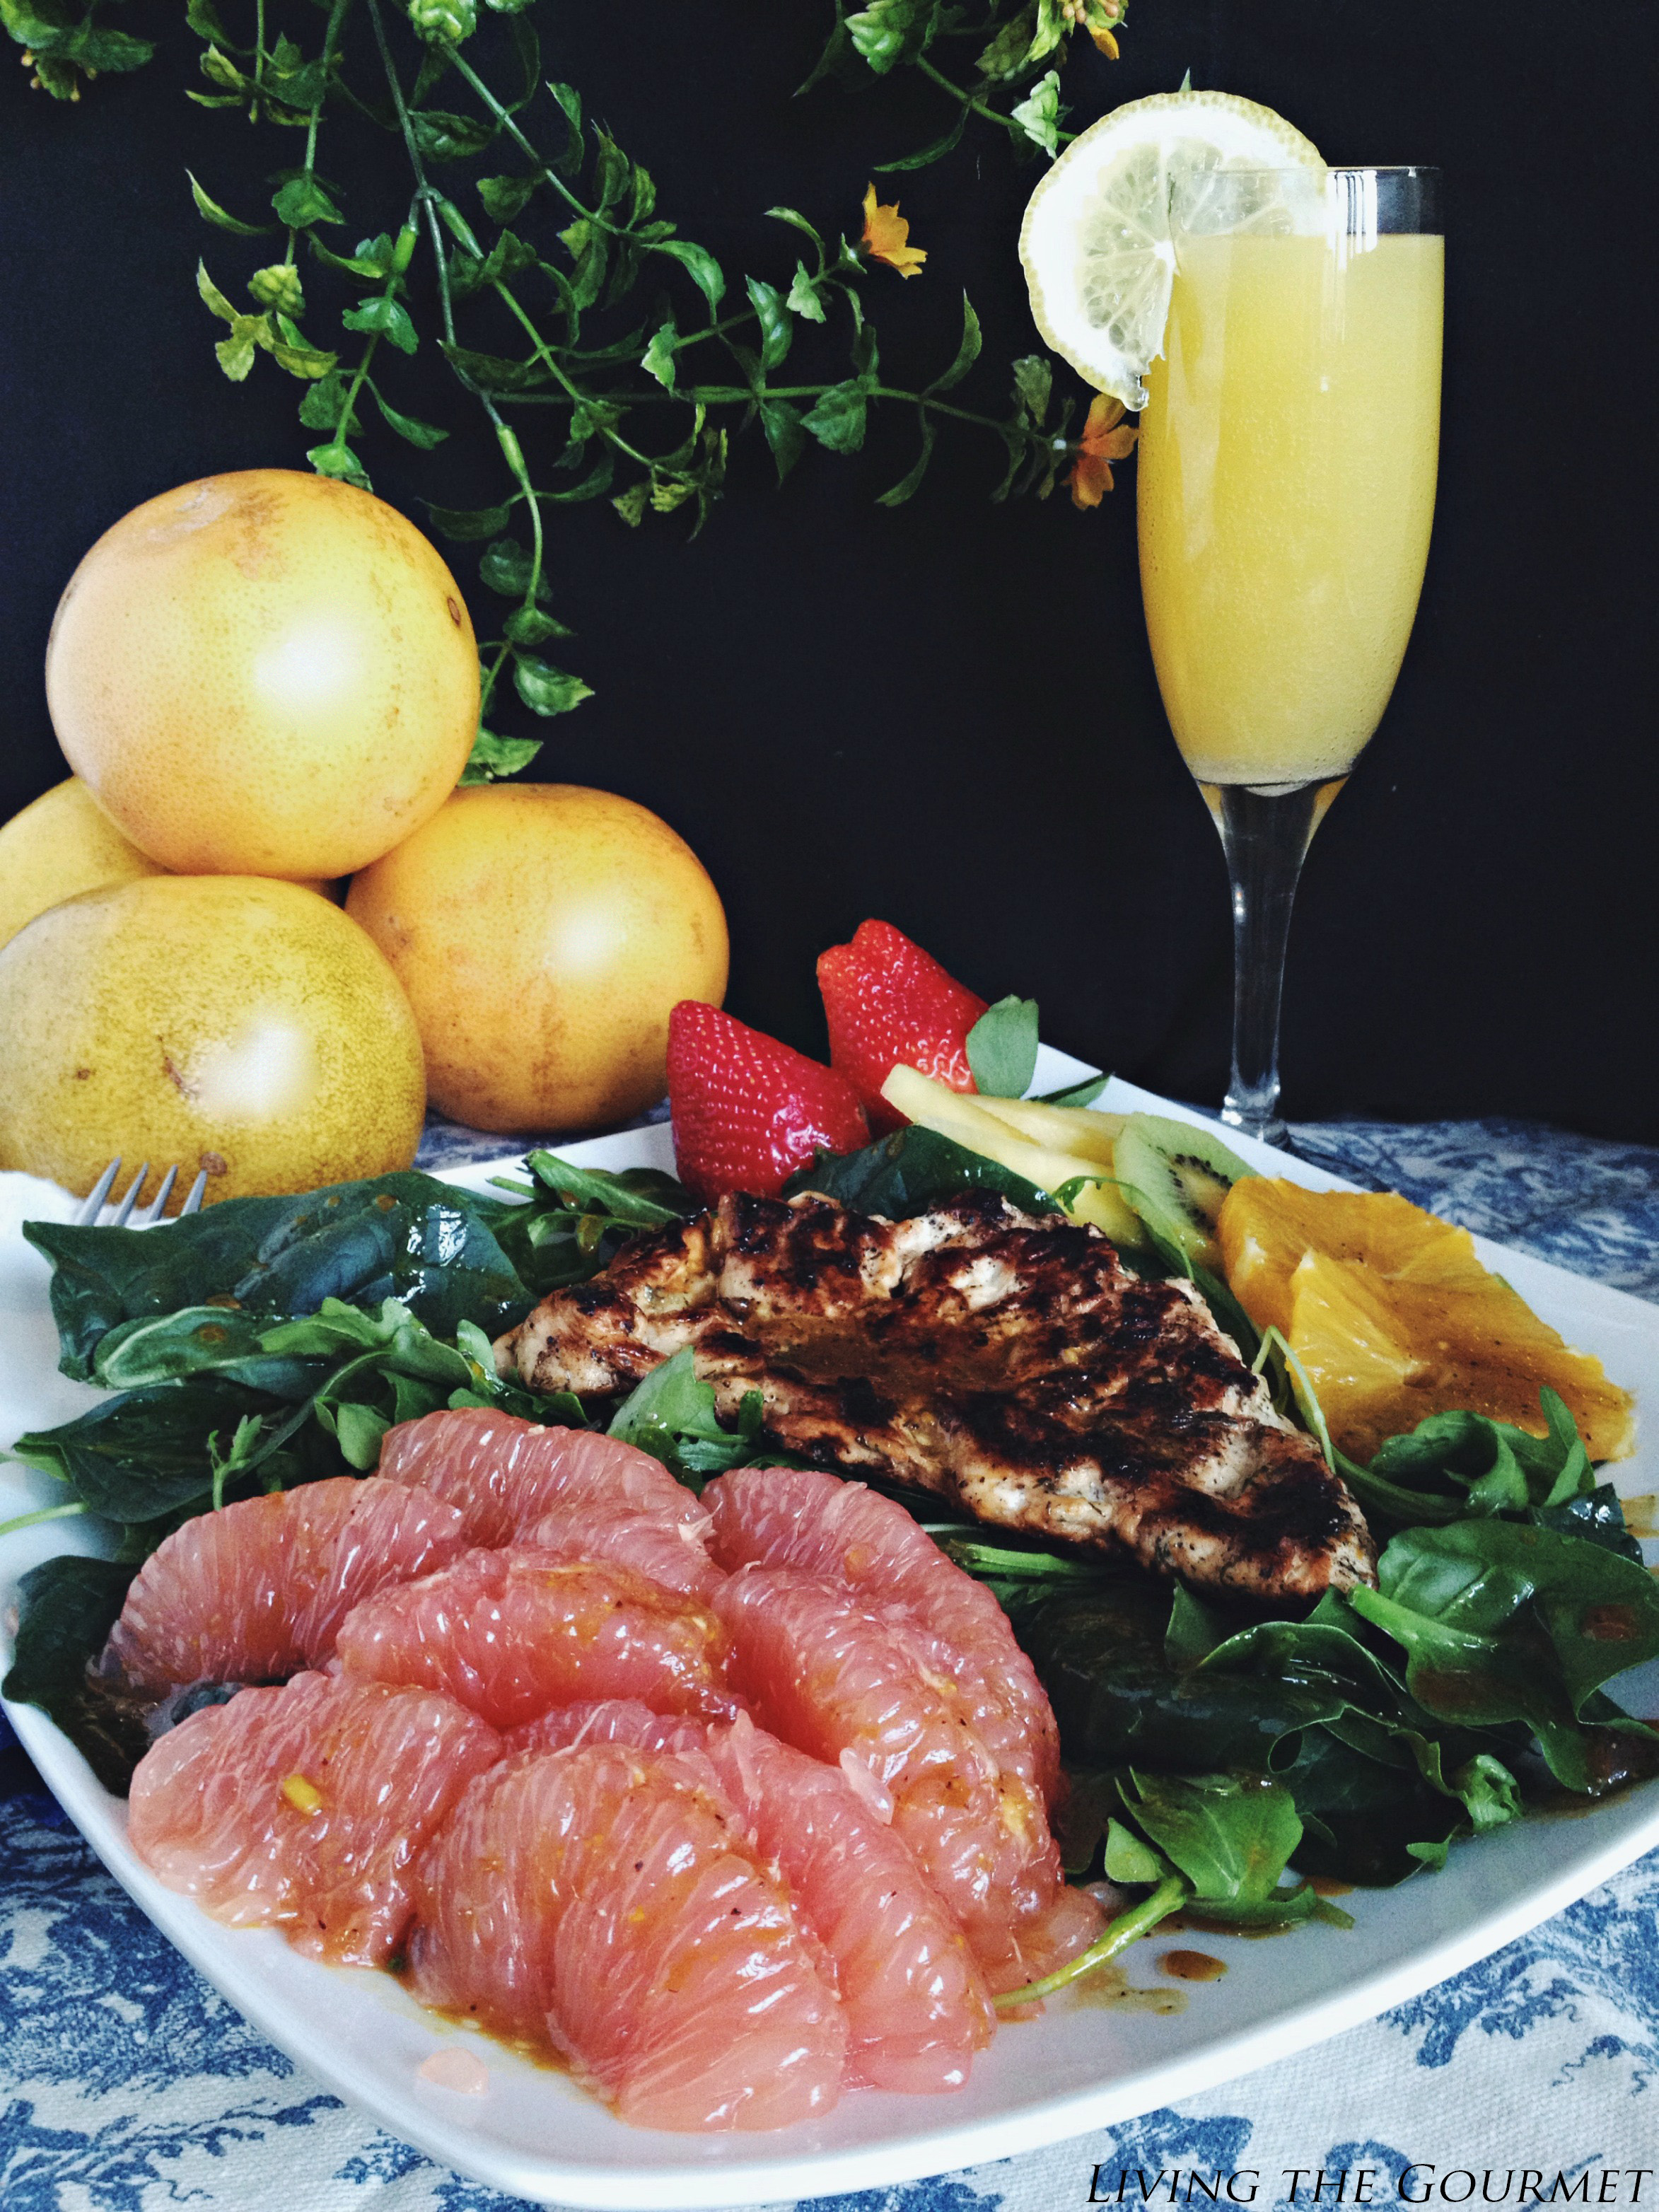 Living the Gourmet: Grilled Chicken Citrus Salad with Balsamic Vinaigrette